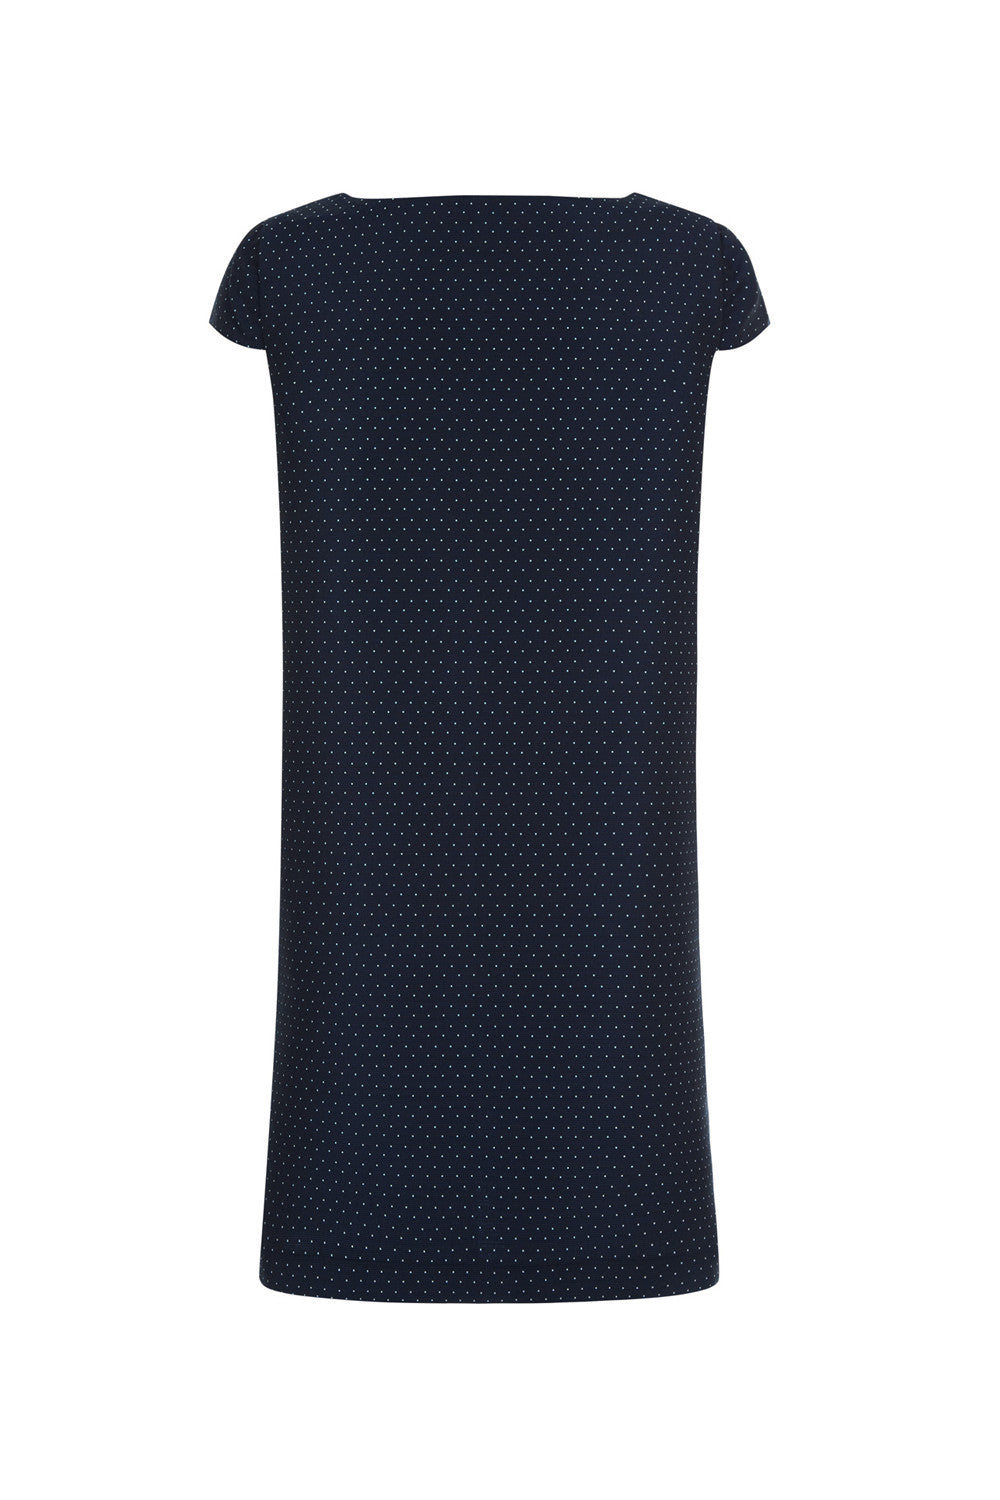 Penelope Dress - Maternity - Madderson London